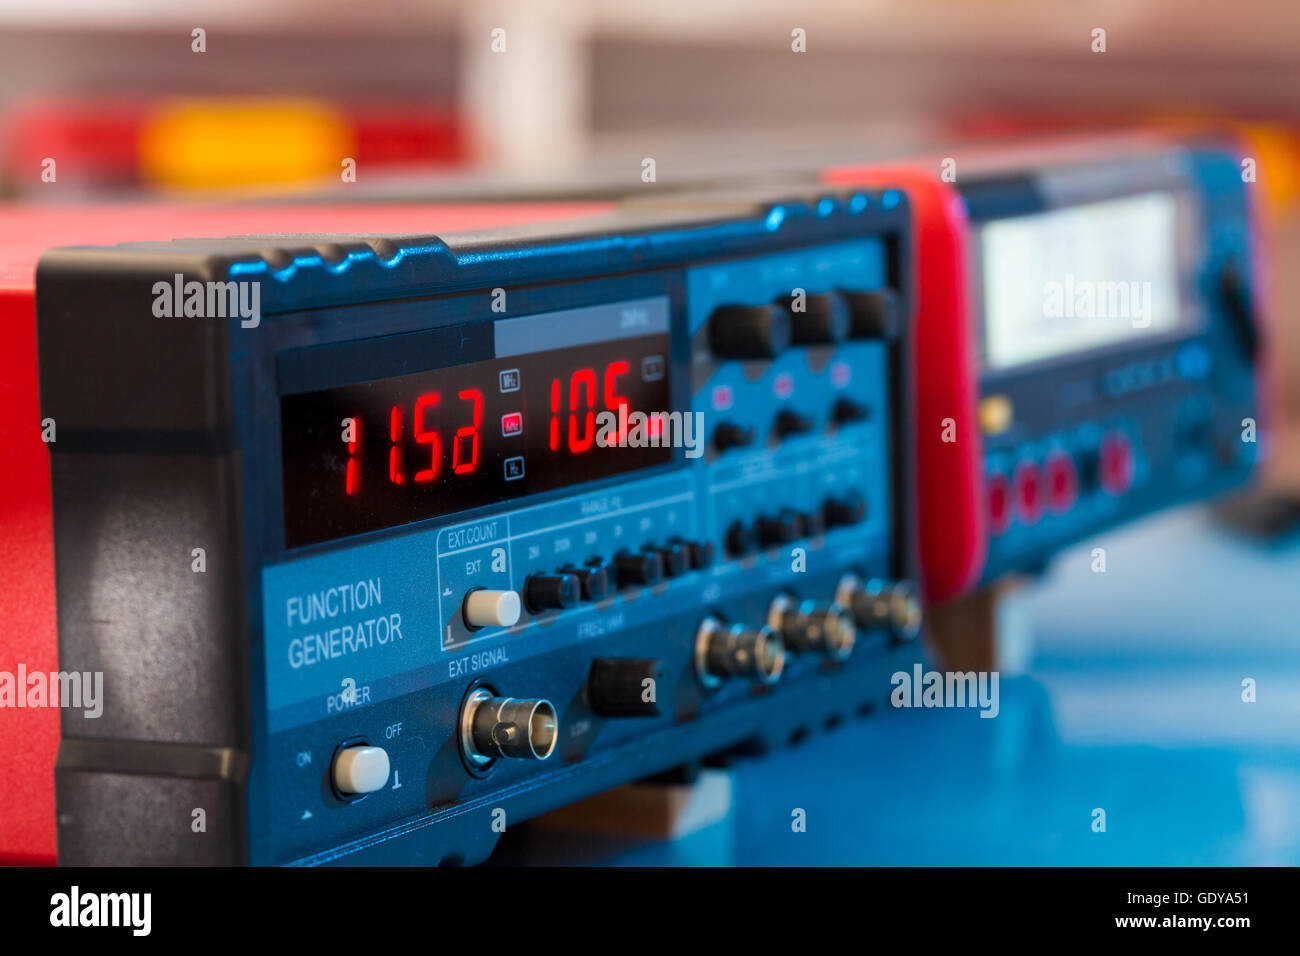 FM VHF and HF transceiver for radio communication and broadcasting Stock Photo